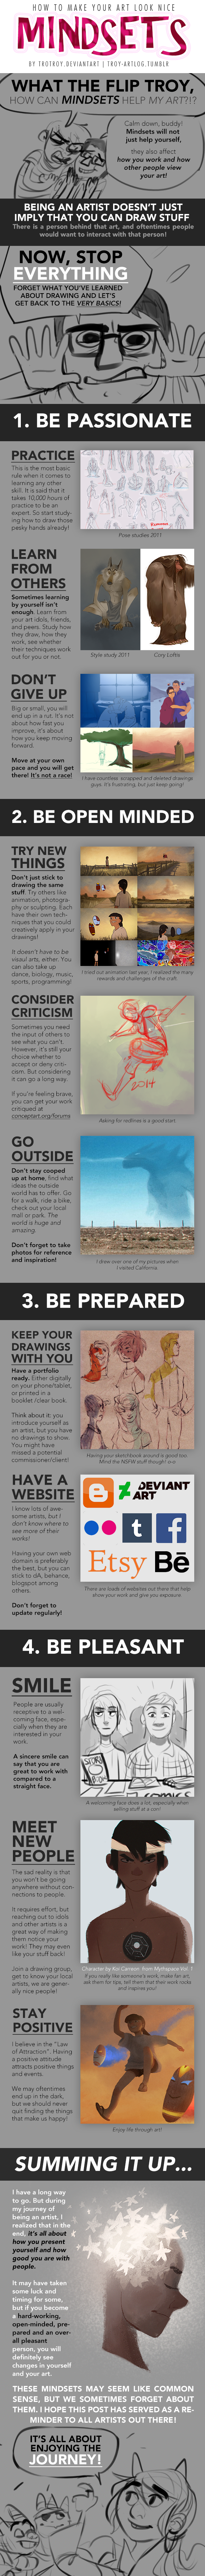 HOW TO MAKE YOUR ART LOOK NICE: Mindsets